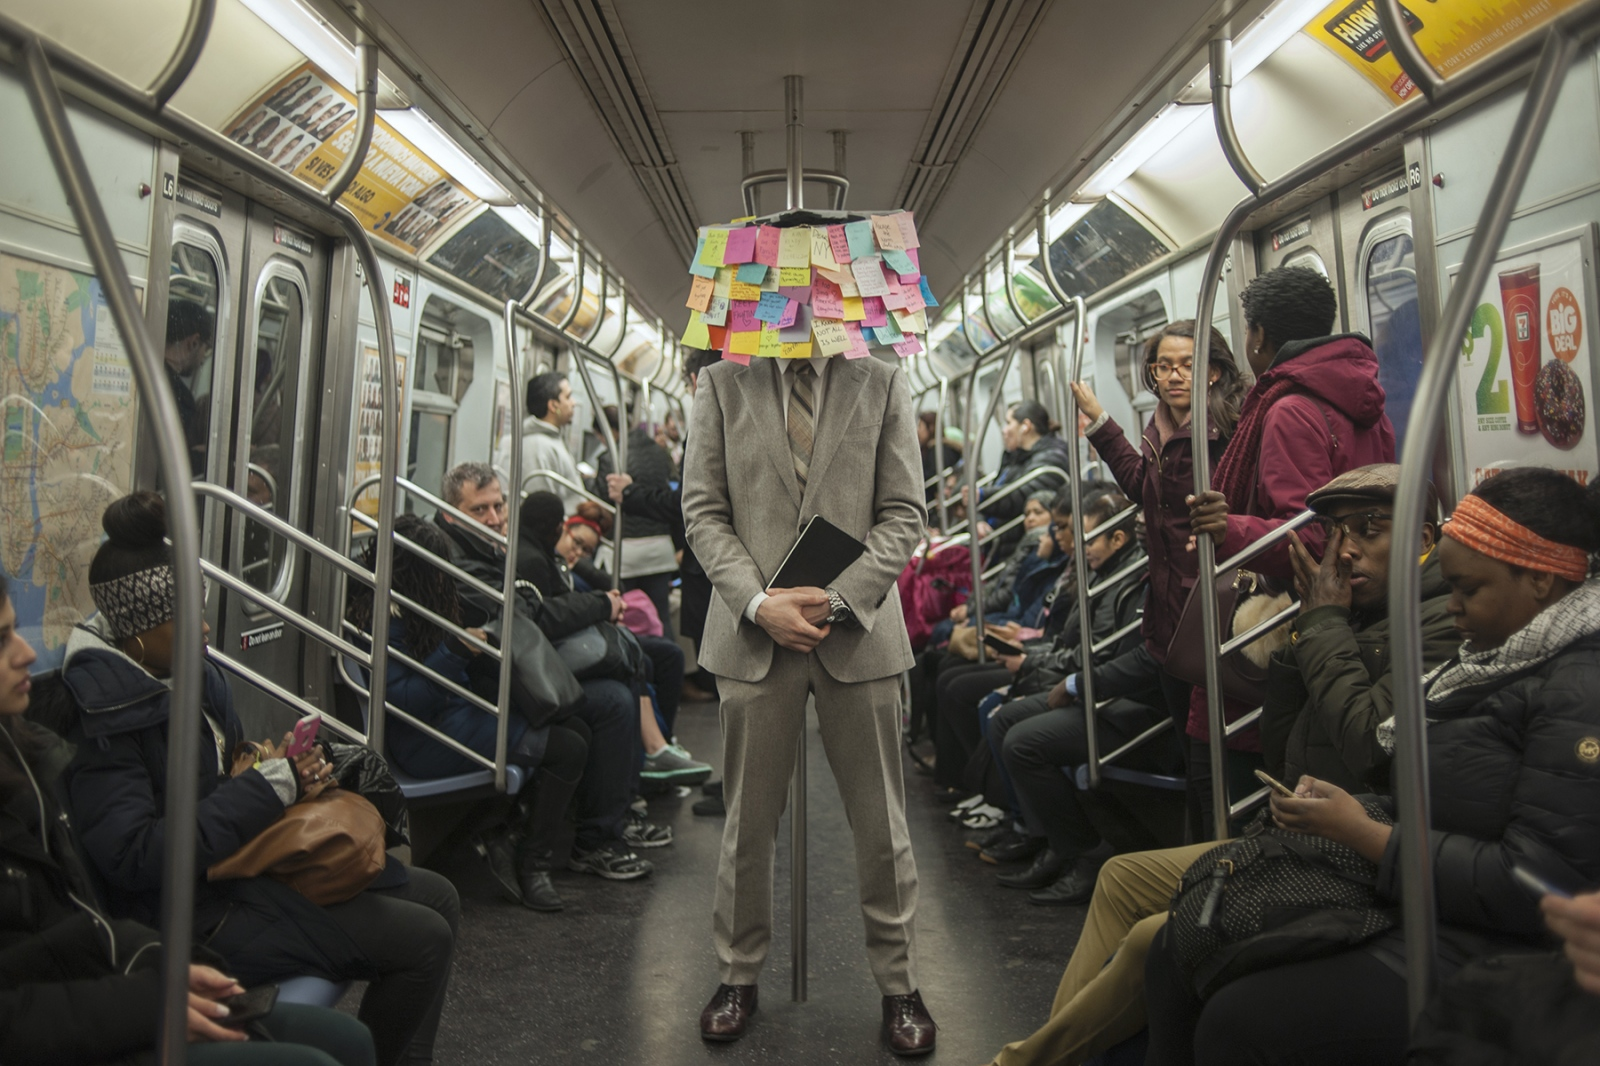 """The day after Election Day, Matthew Chavez, """"Levee,"""" brought out sticky notes to the 14th Street subway tunnel between 1, 2, 3, and L trains. Over 10,000 people participated. These post-its soon lined the walls of 14th St station, providing """"Post-Election Therapy"""" (The Guardian) to New Yorkers during their daily commute. Chavez said he started Subway Therapy while thinking about absolution and the elections. """"I thought, what could I do to translate their messages into a beautiful body of work?"""" He wanted people to celebrate being part of a diverse community and voice their thoughts in this time of """"division and stress."""" The man behind Subway Therapy is careful to stay in the center, and did not disclose his leanings to those he interacted with. """"Subway Therapy"""" has since been published into a book by the same title, and a portion of of the post-its have forever been preserved at the New York Historical Society."""